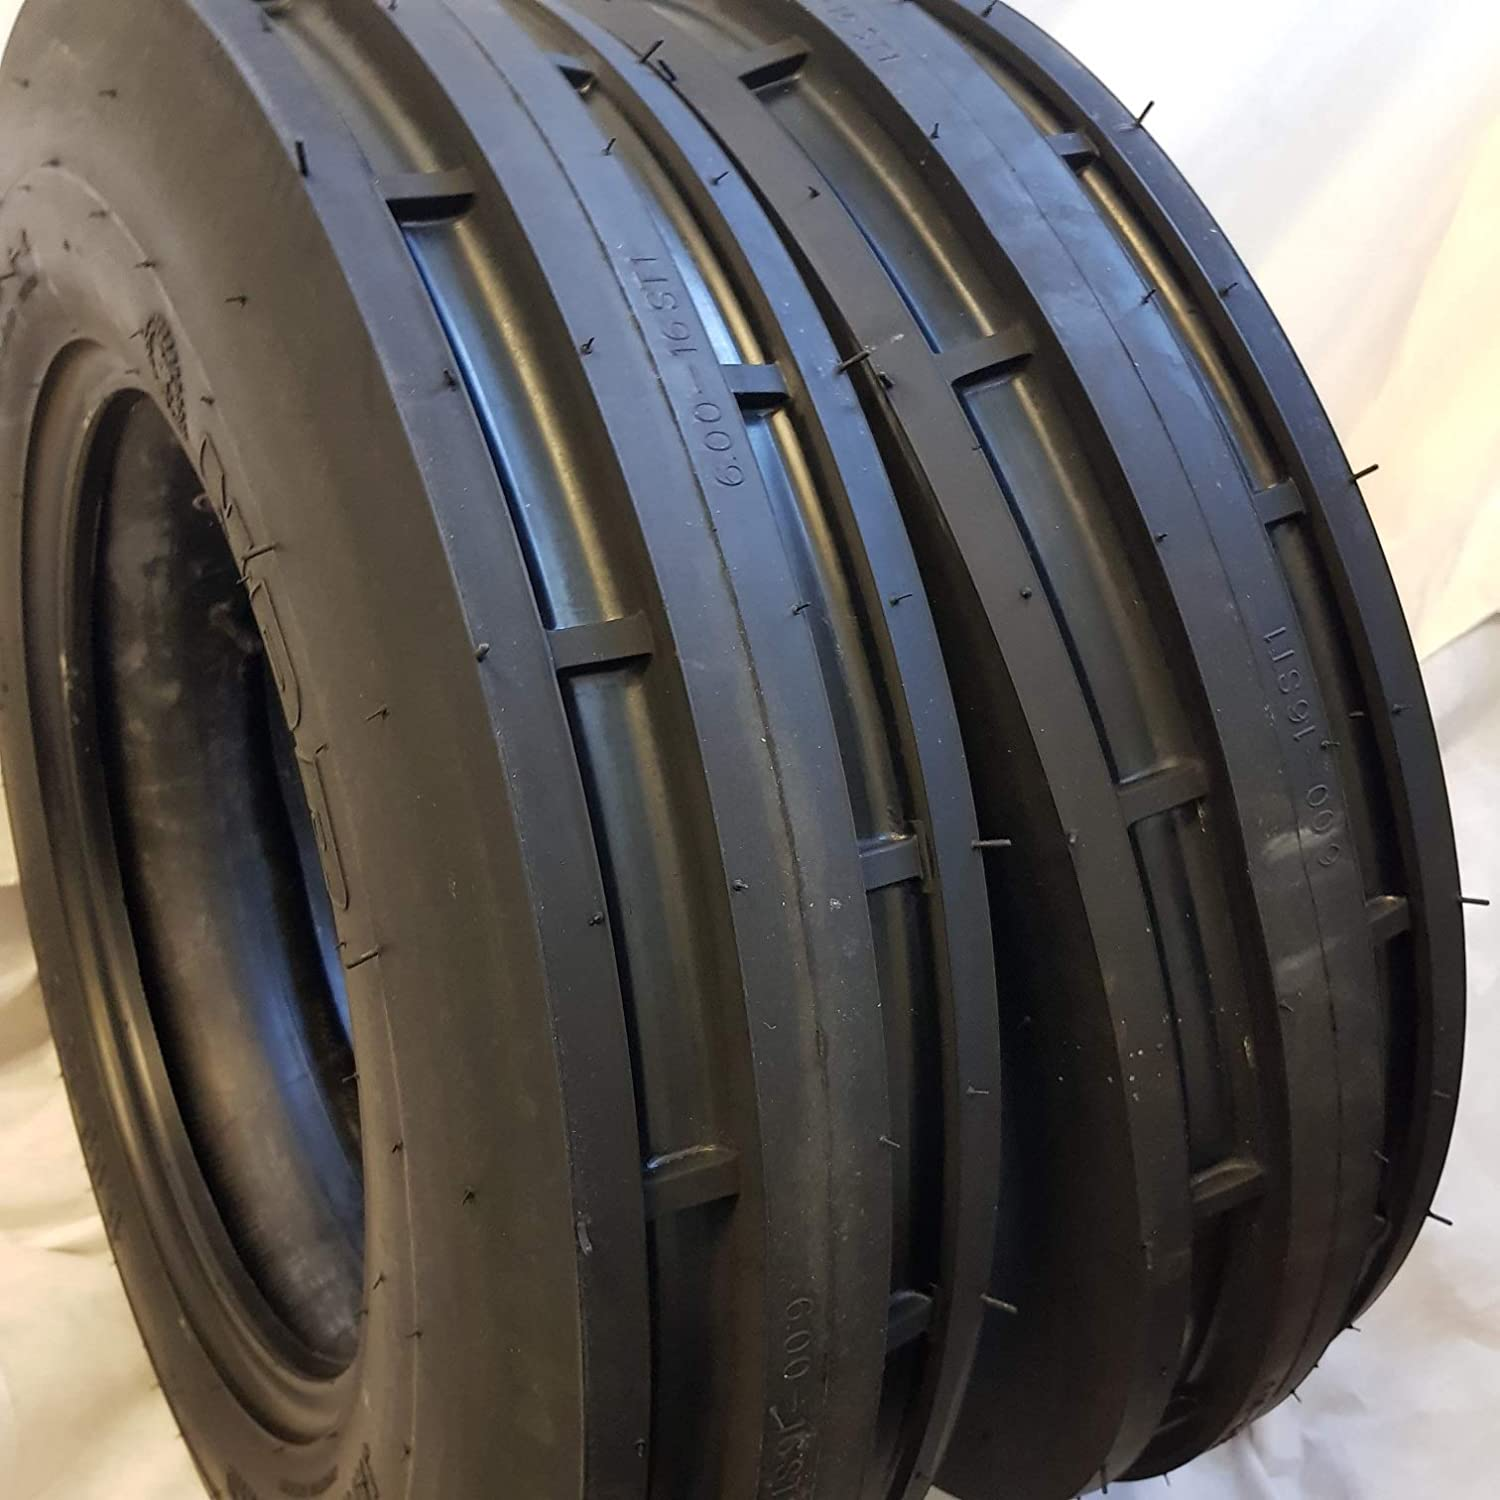 TWO 550X16,550-16,5.50X16 DEERE FORD Six Ply 3 Rib Tractor Tires w/Tubes 71aJz0wiNrLSL1500_